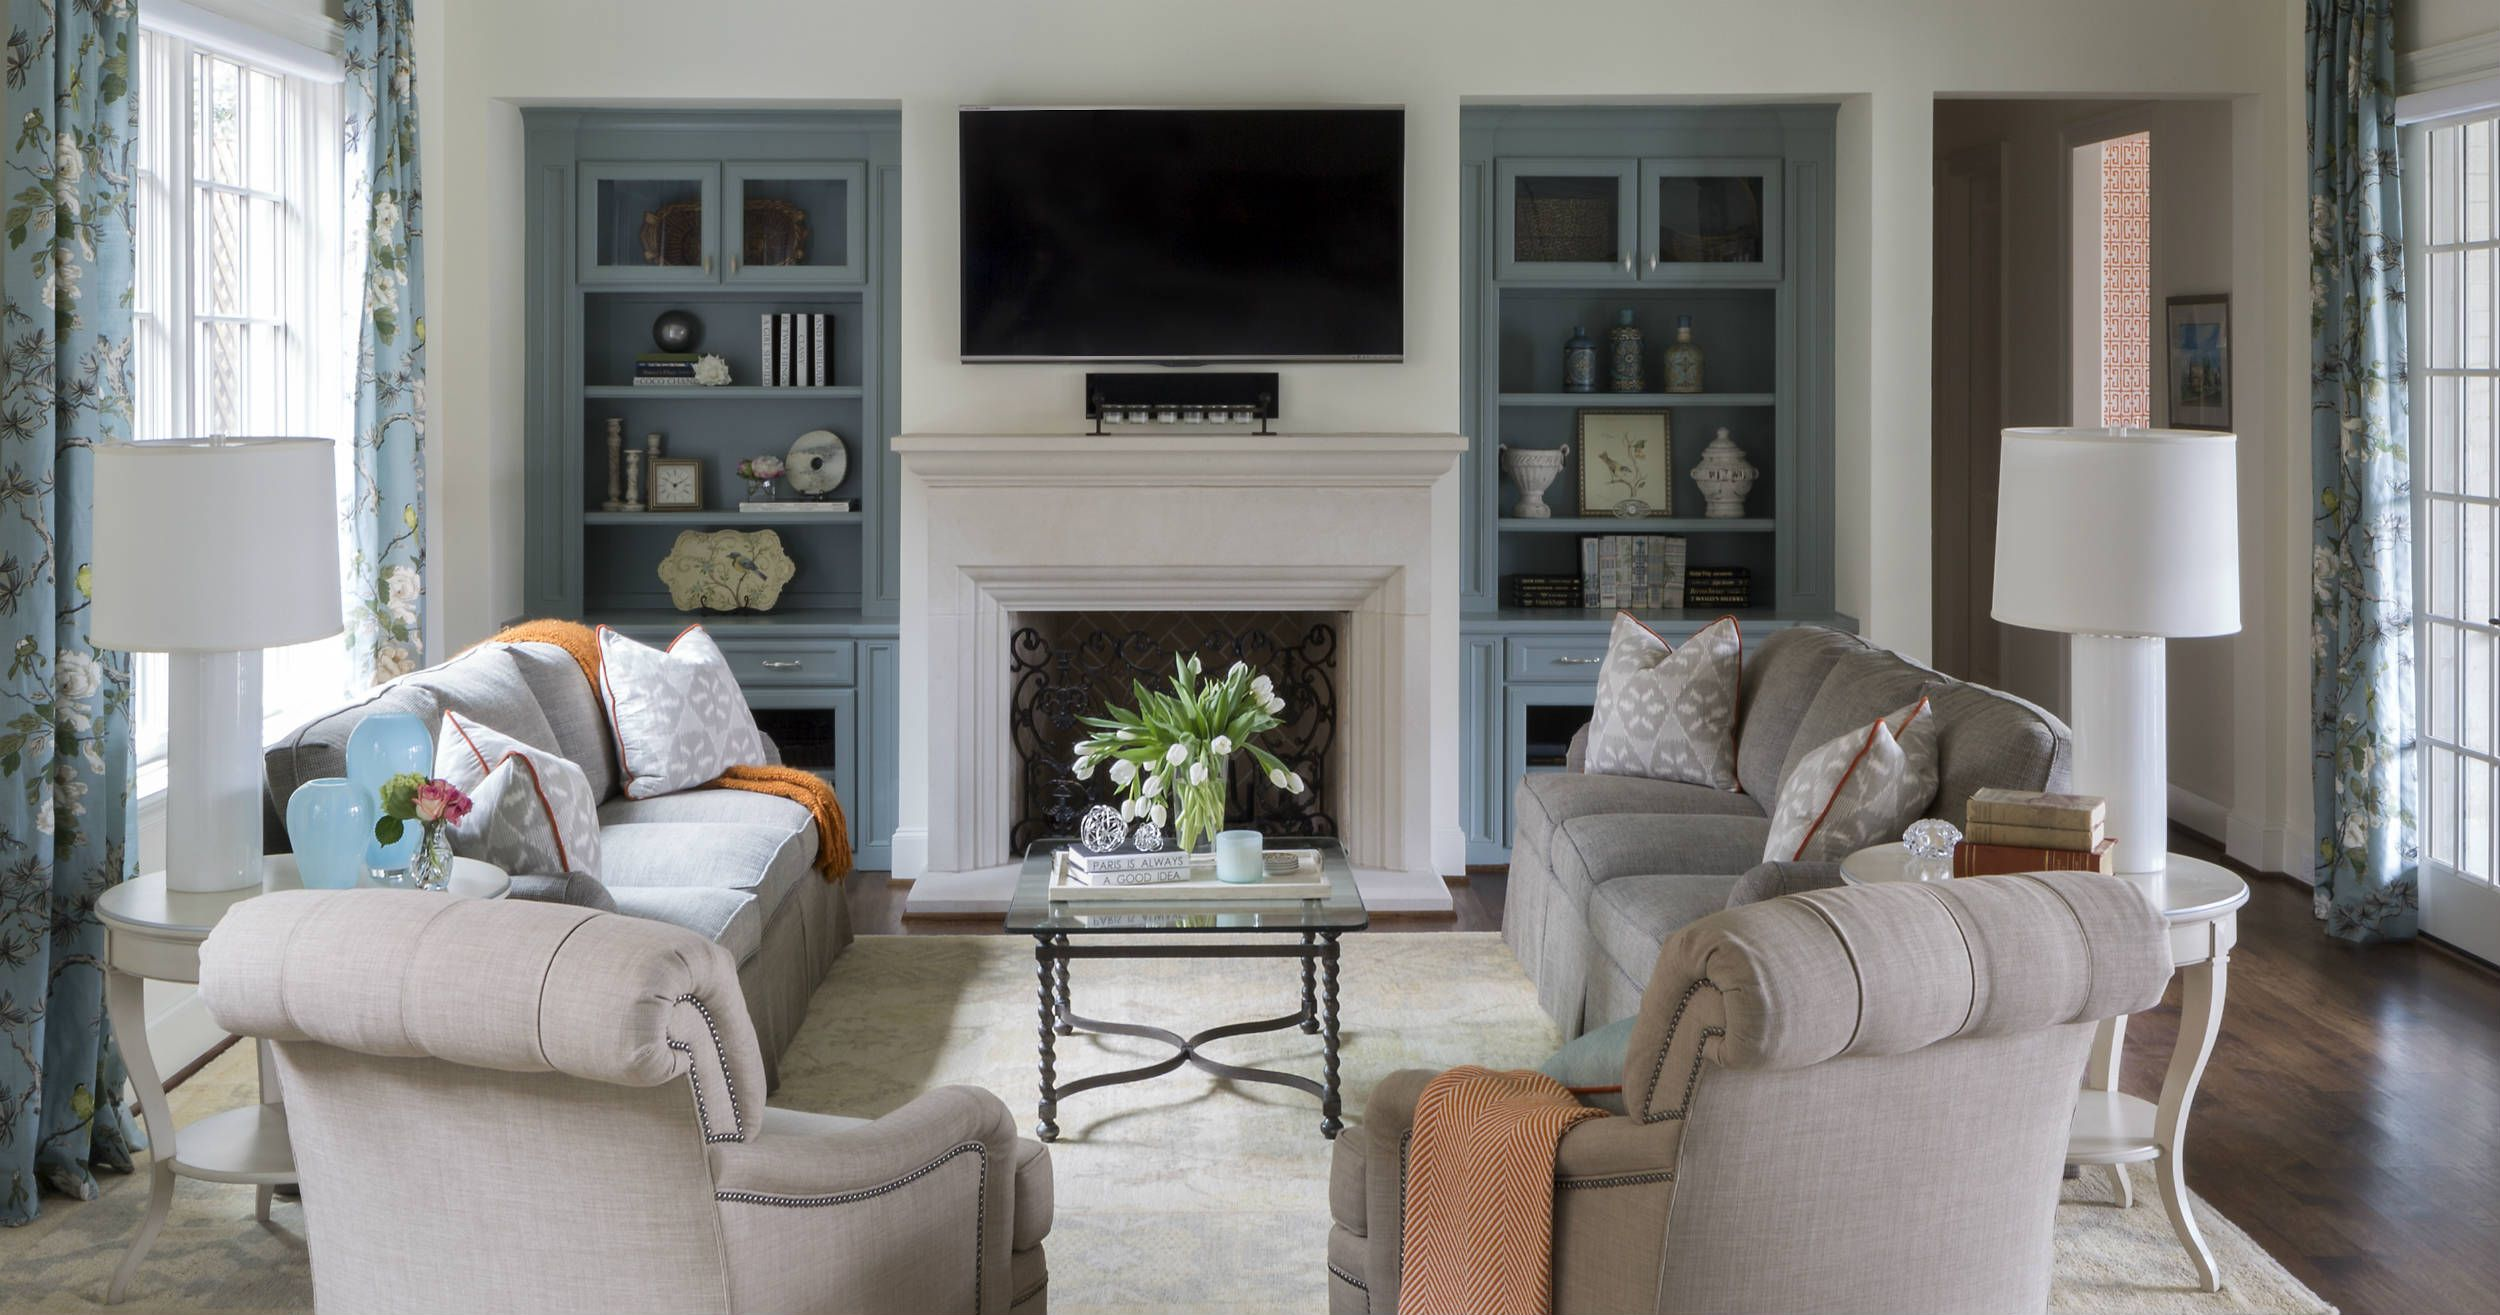 Fantastic Fort Worth Georgian Southern Home Magazine Media Room Floral Largest Home Design Picture Inspirations Pitcheantrous